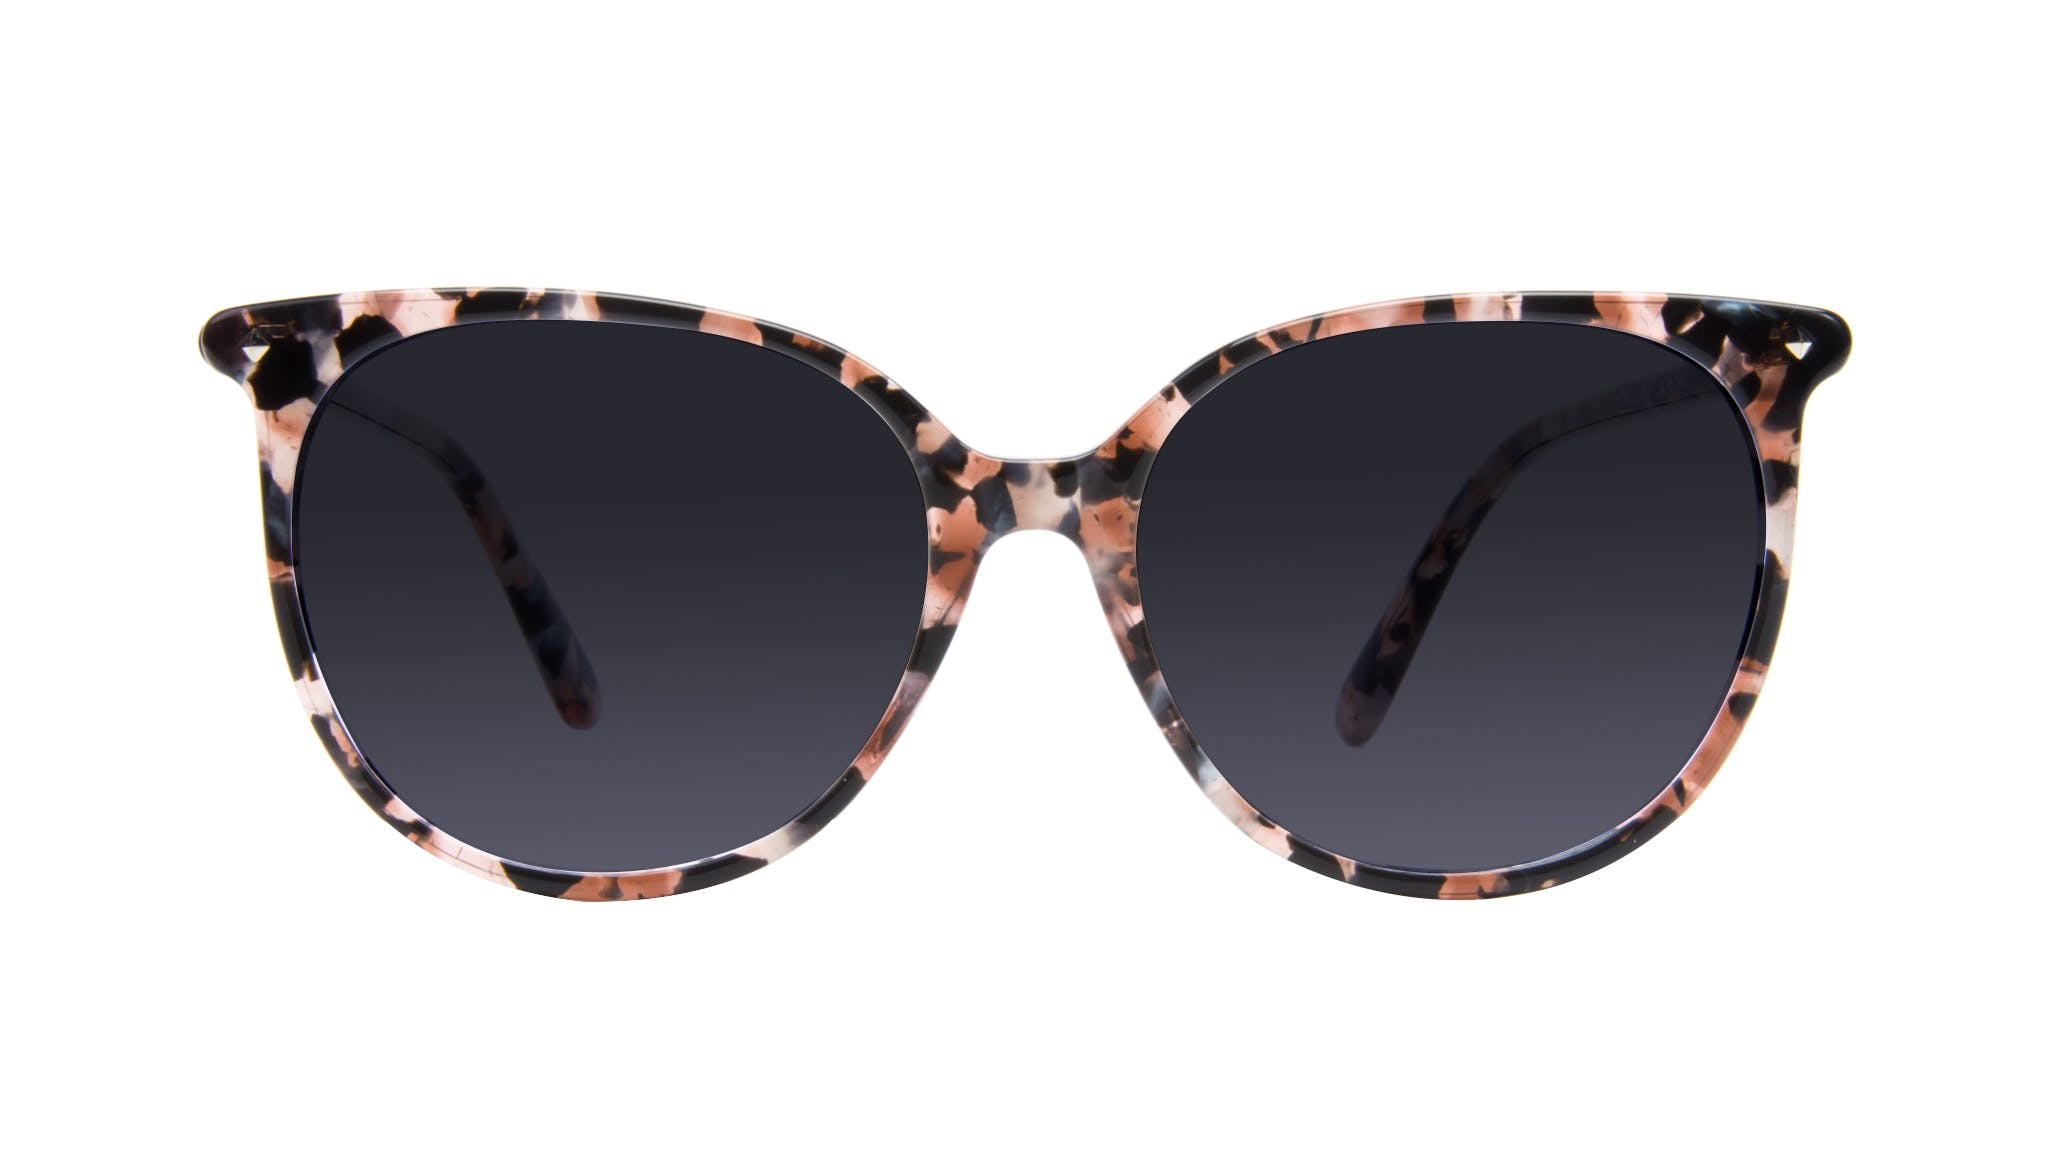 Affordable Fashion Glasses Cat Eye Square Sunglasses Women Area Pink Tortoise Front